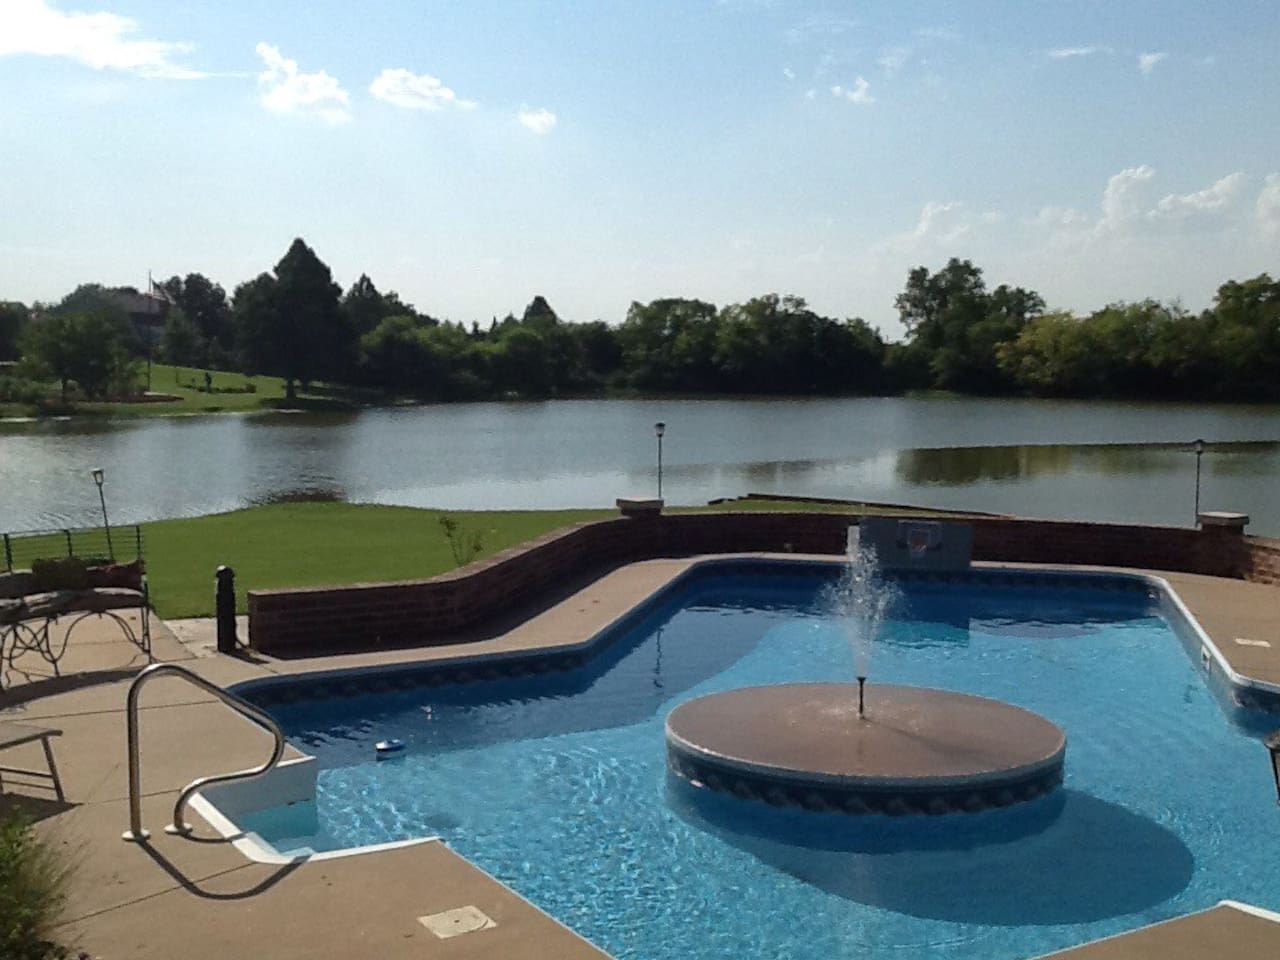 View of lake and pool with fountain.